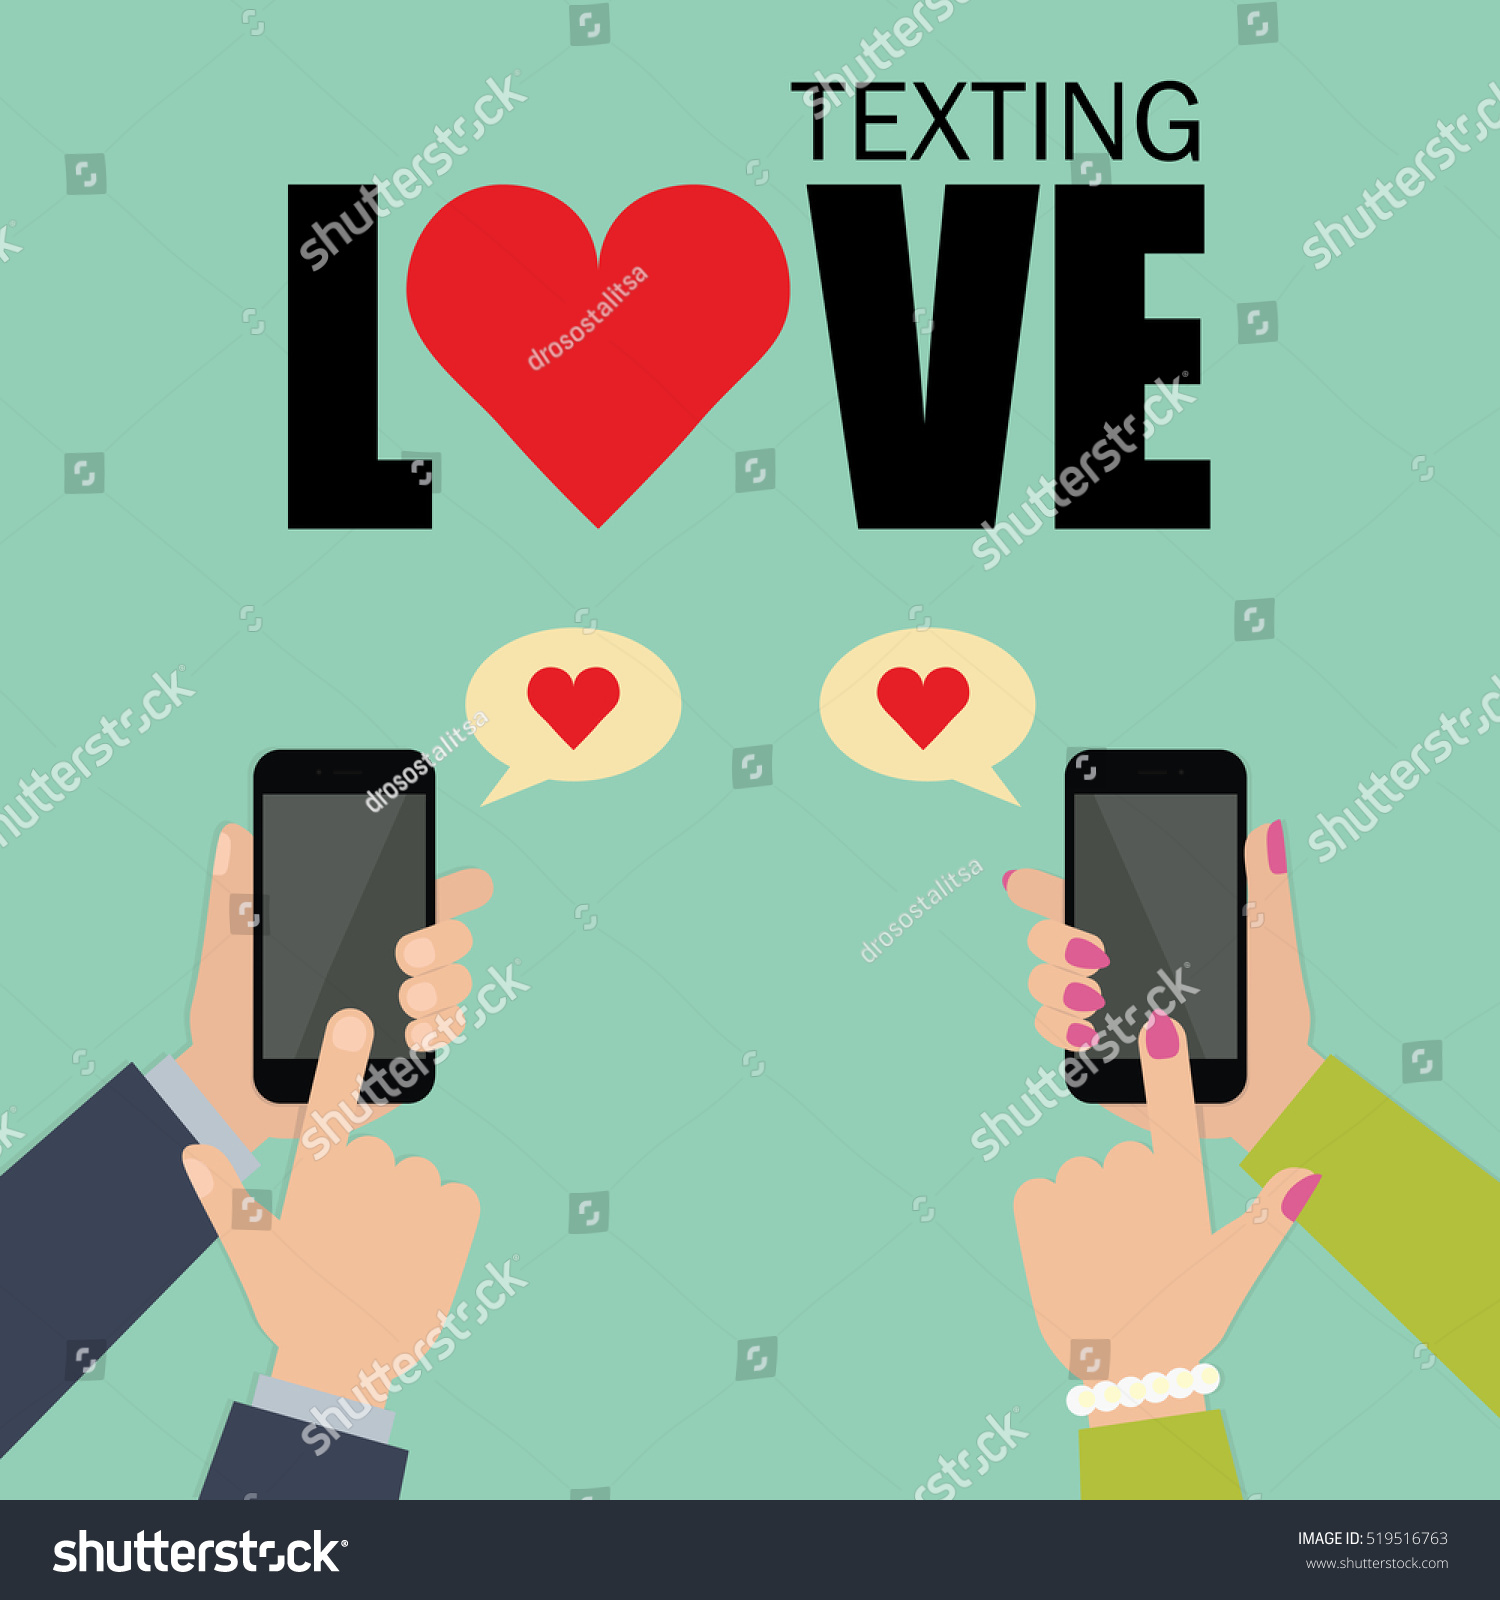 Love texting online dating vector background stock vector 519516763 love texting online dating vector background two people texting love messages to each other buycottarizona Image collections